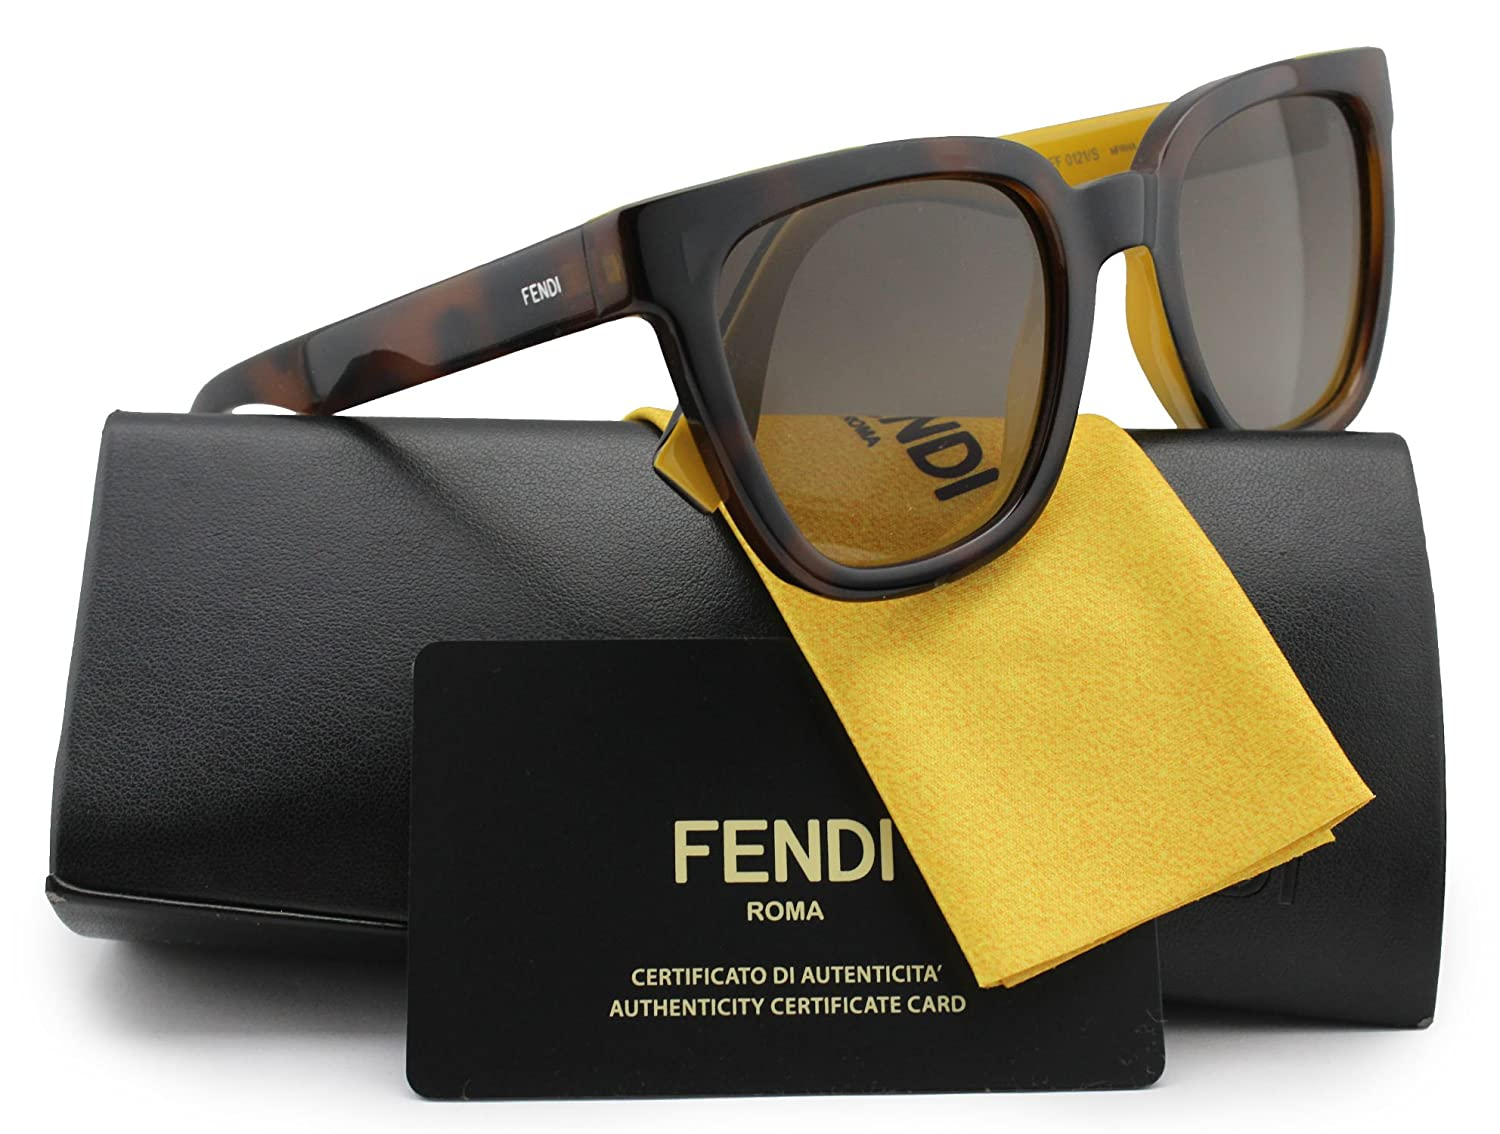 c905bd37a6b0b FENDI FF0121 S Color Flash Sunglasses Havana w Brown Gradient (0MFR) 0121  MFR HA 51mm Authentic  Amazon.co.uk  Clothing